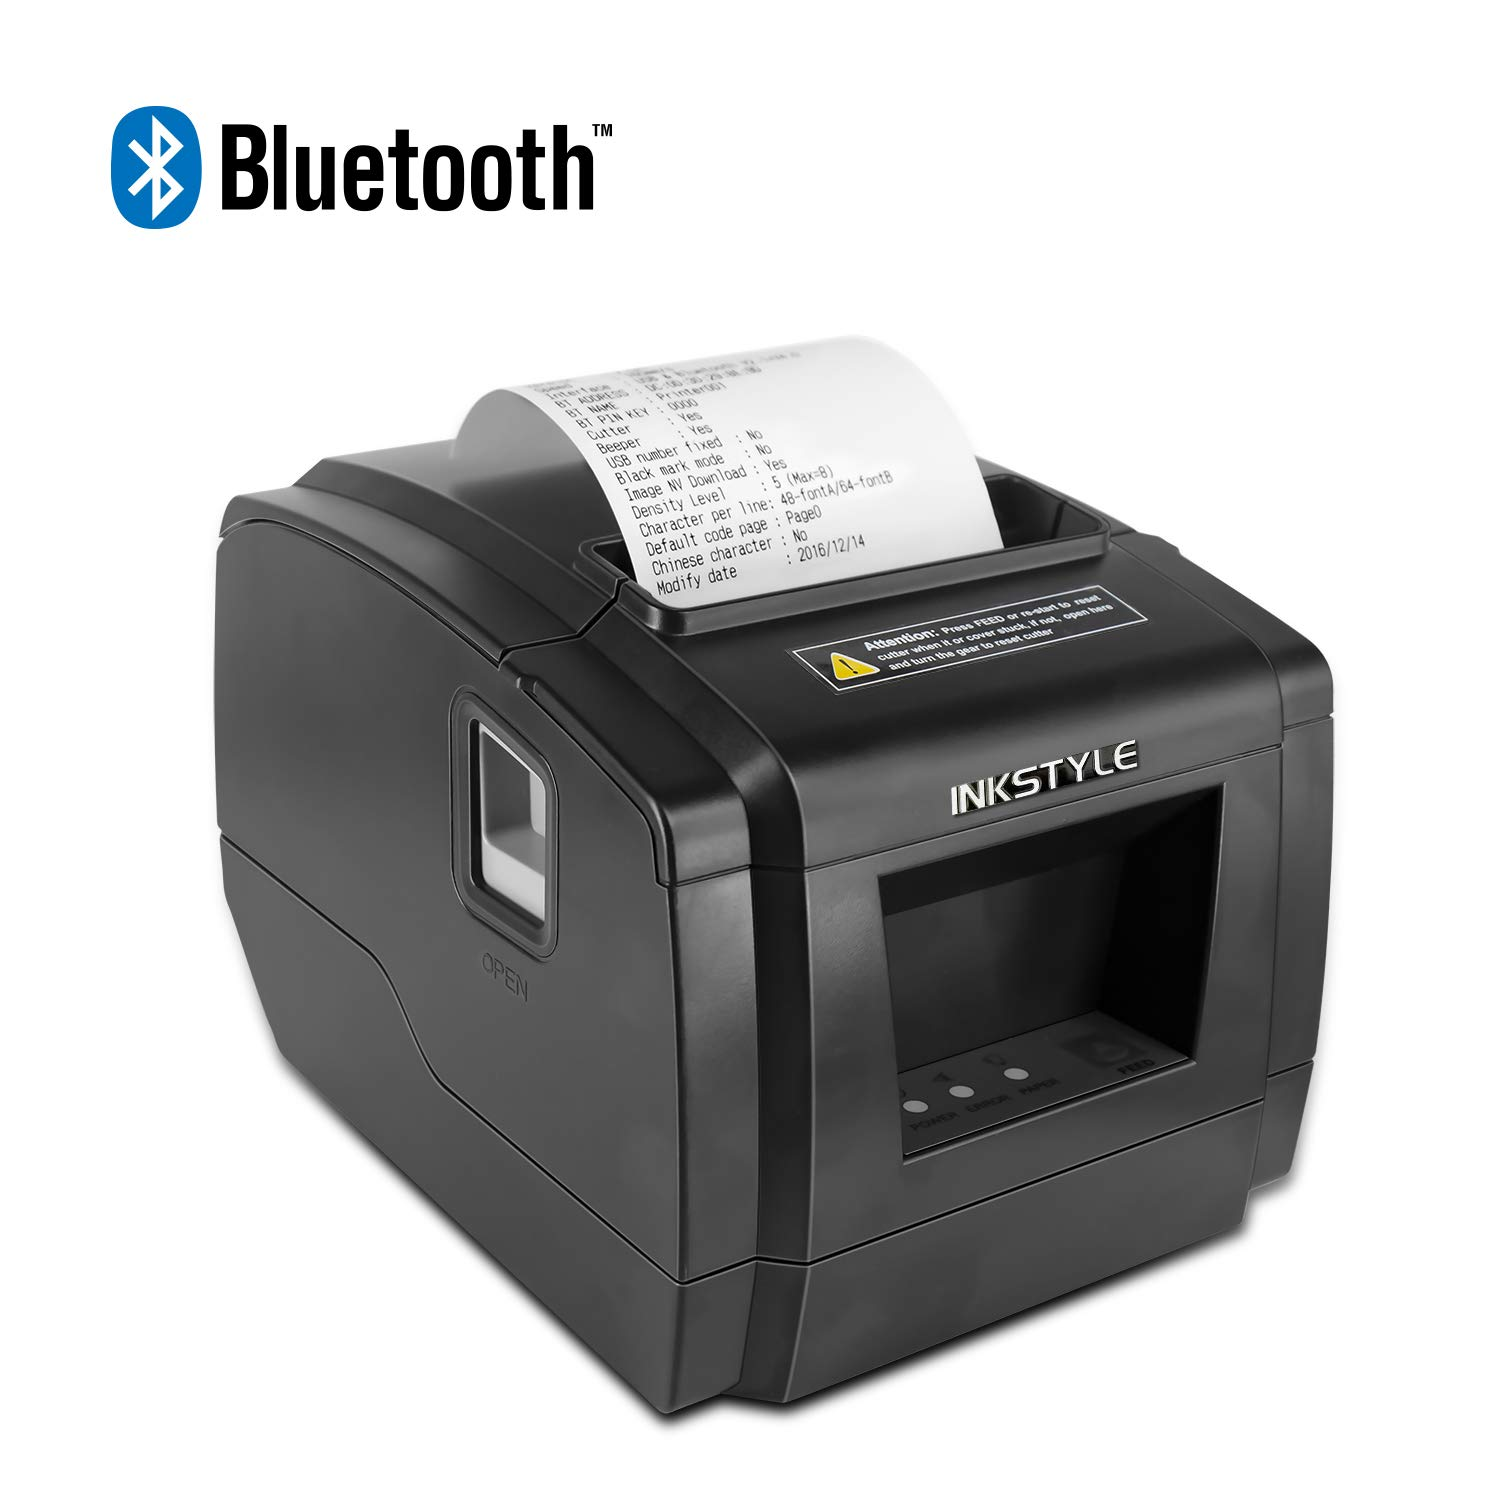 80MM Bluetooth Thermal Receipt Printer – Paper Width 3 1/8 (80mm)  –INKSTYLE Wireless POS Thermal Printer with Auto Cutter, High-Speed